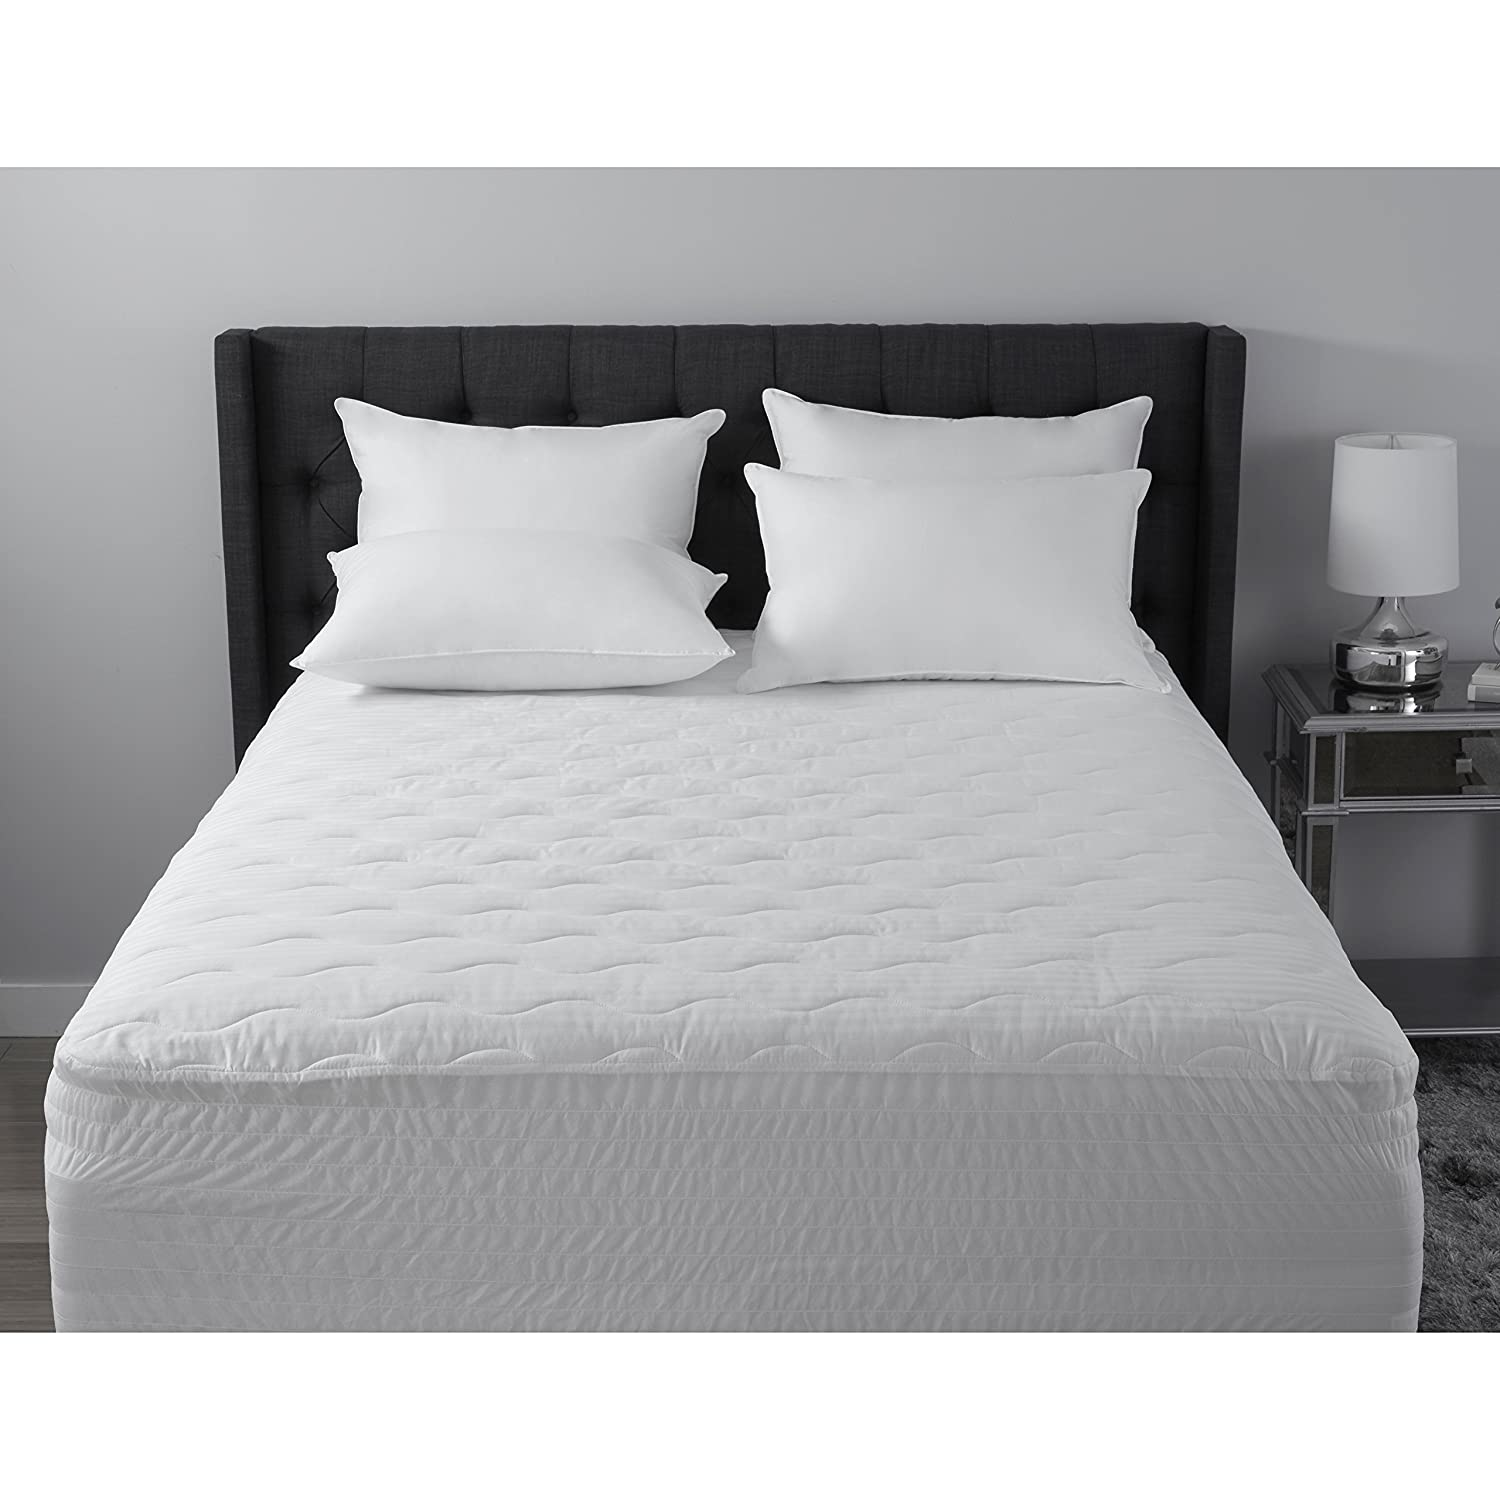 Croscill 500 Thread Count Egyptian Cotton Mattress Pad Queen